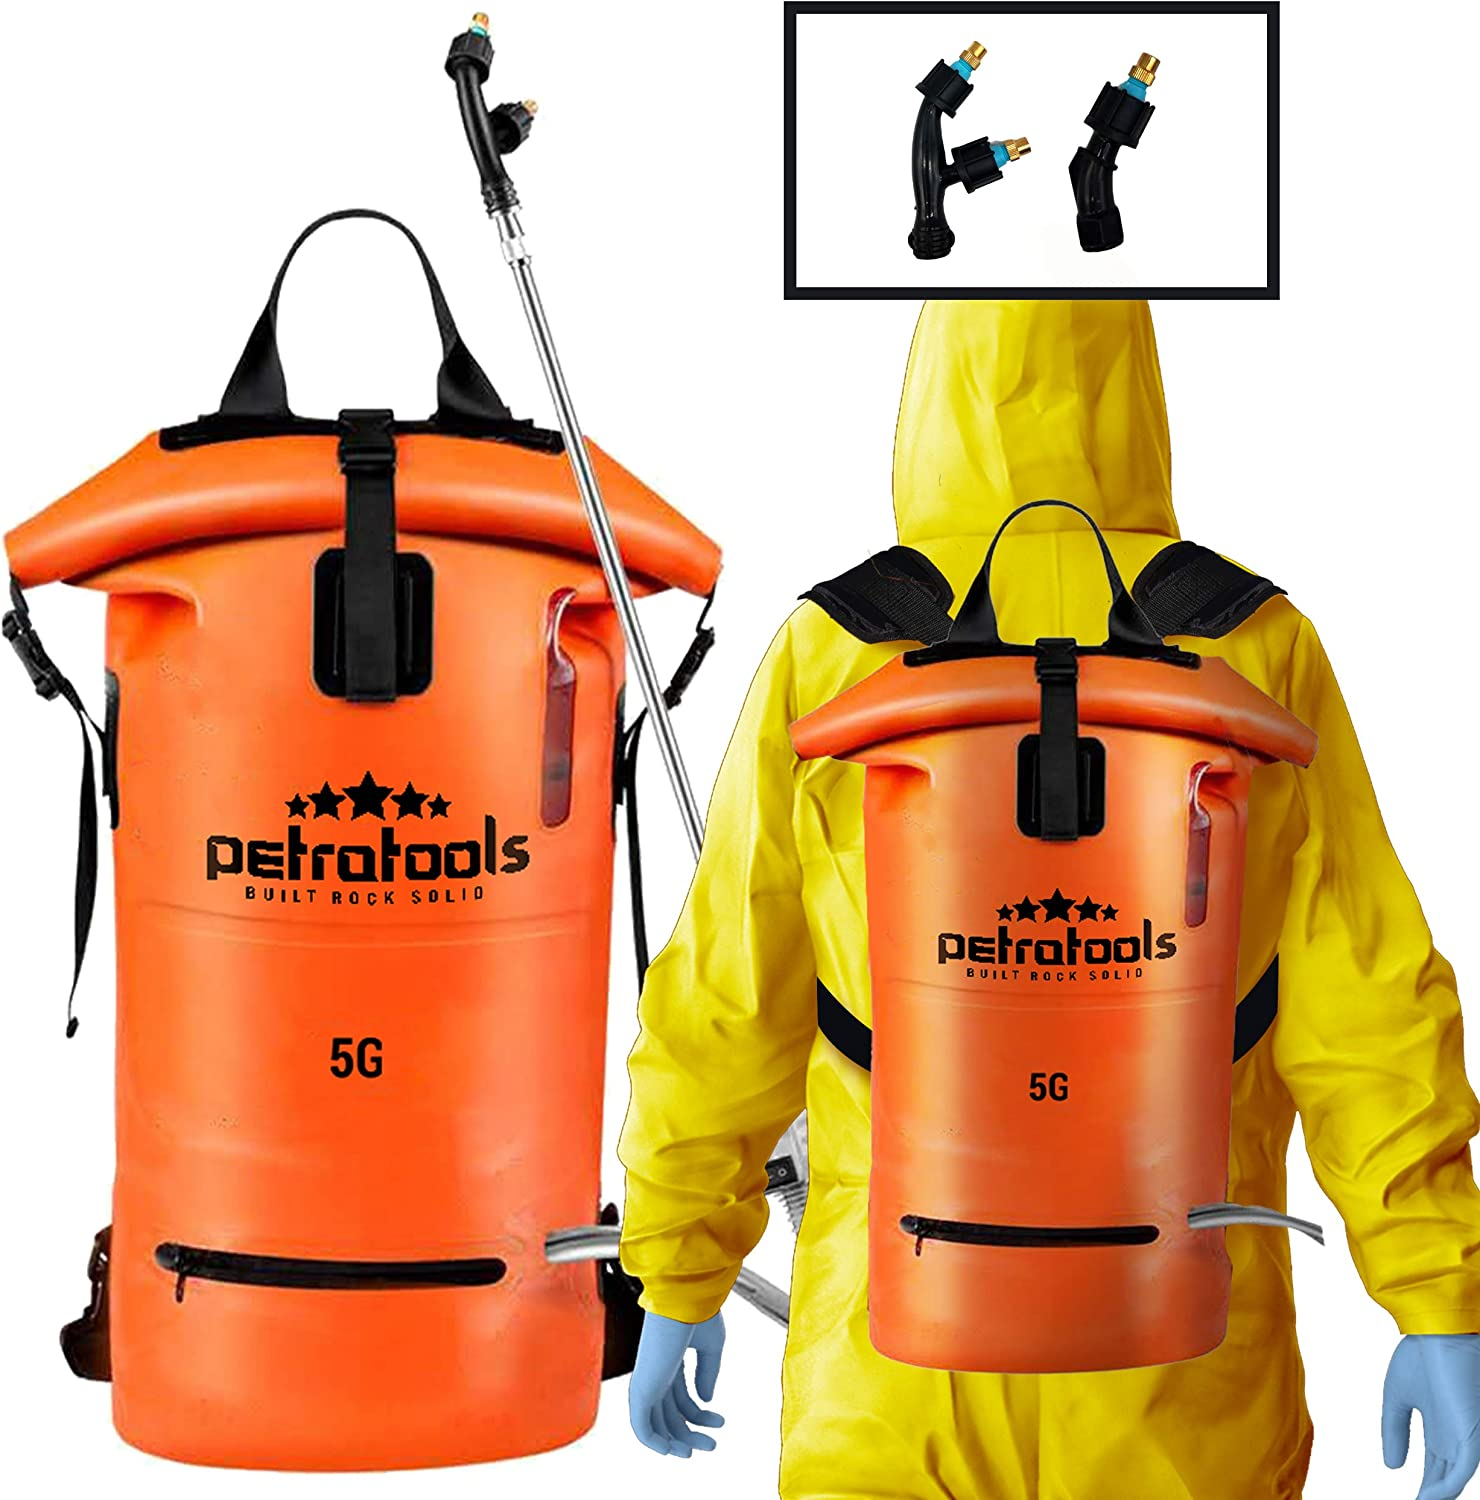 PetraTools 5 Gallon Battery Powered Backpack Sprayer - Portable Electric Sprayer for Weeds, Lawn and Garden, Herbicide, Fire Control - Durable Heavy Duty Foldable Rubber Construction